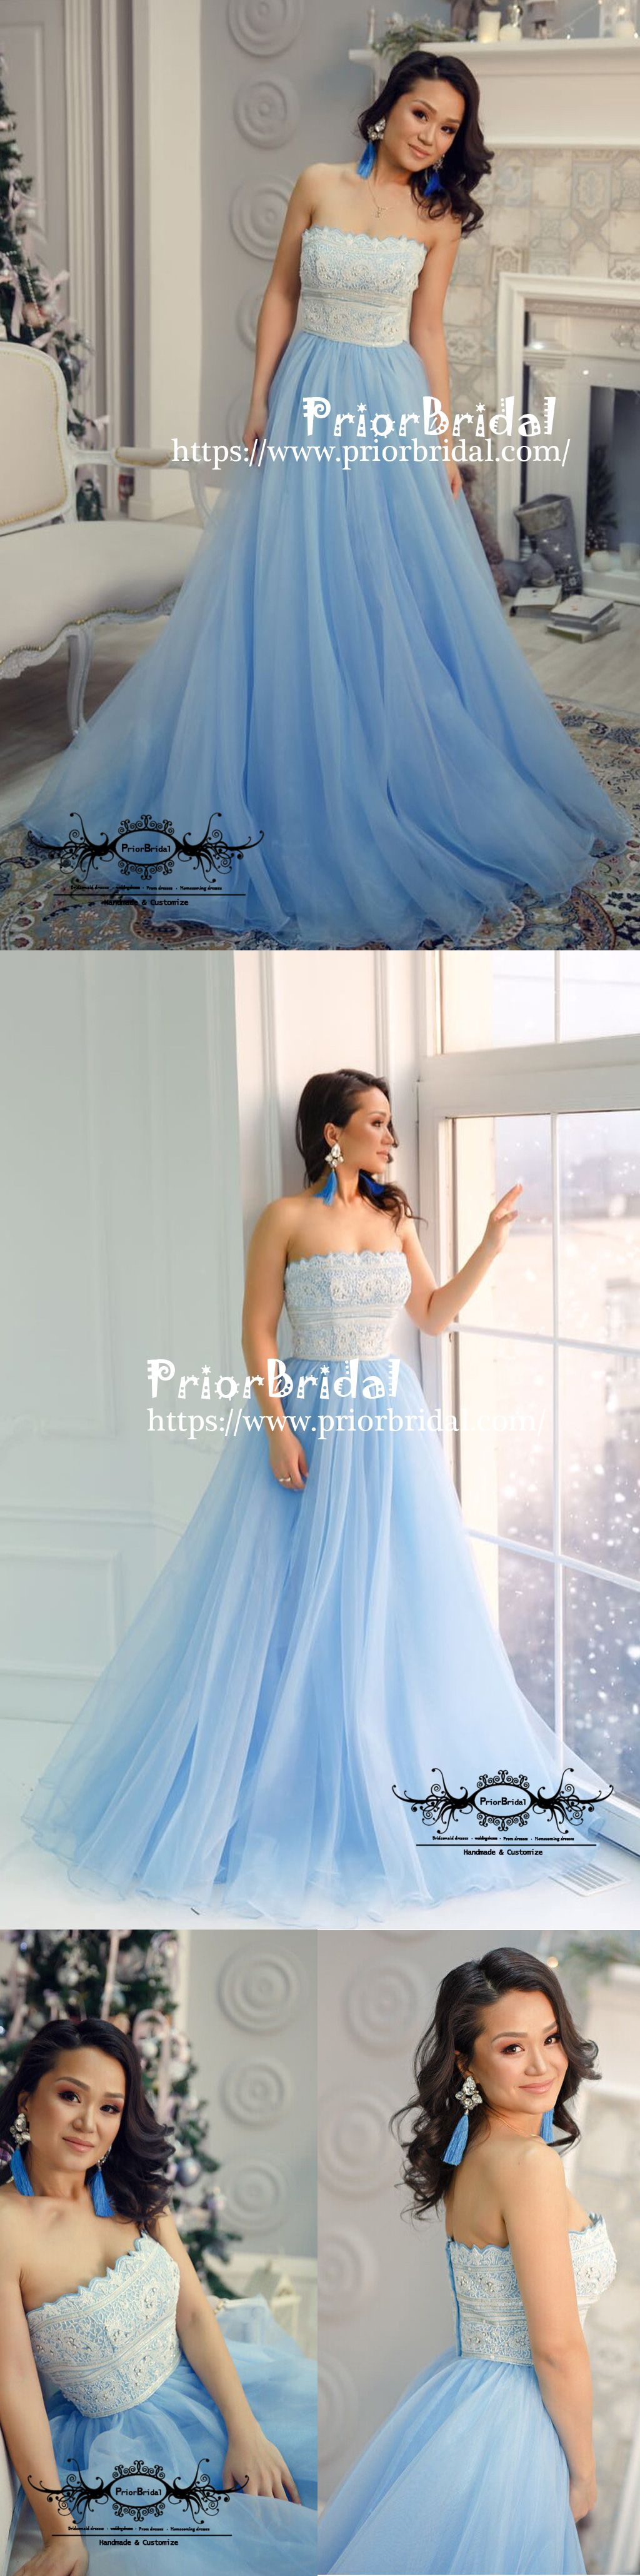 Straight across white lace beaded top pale blue tulle bottom prom